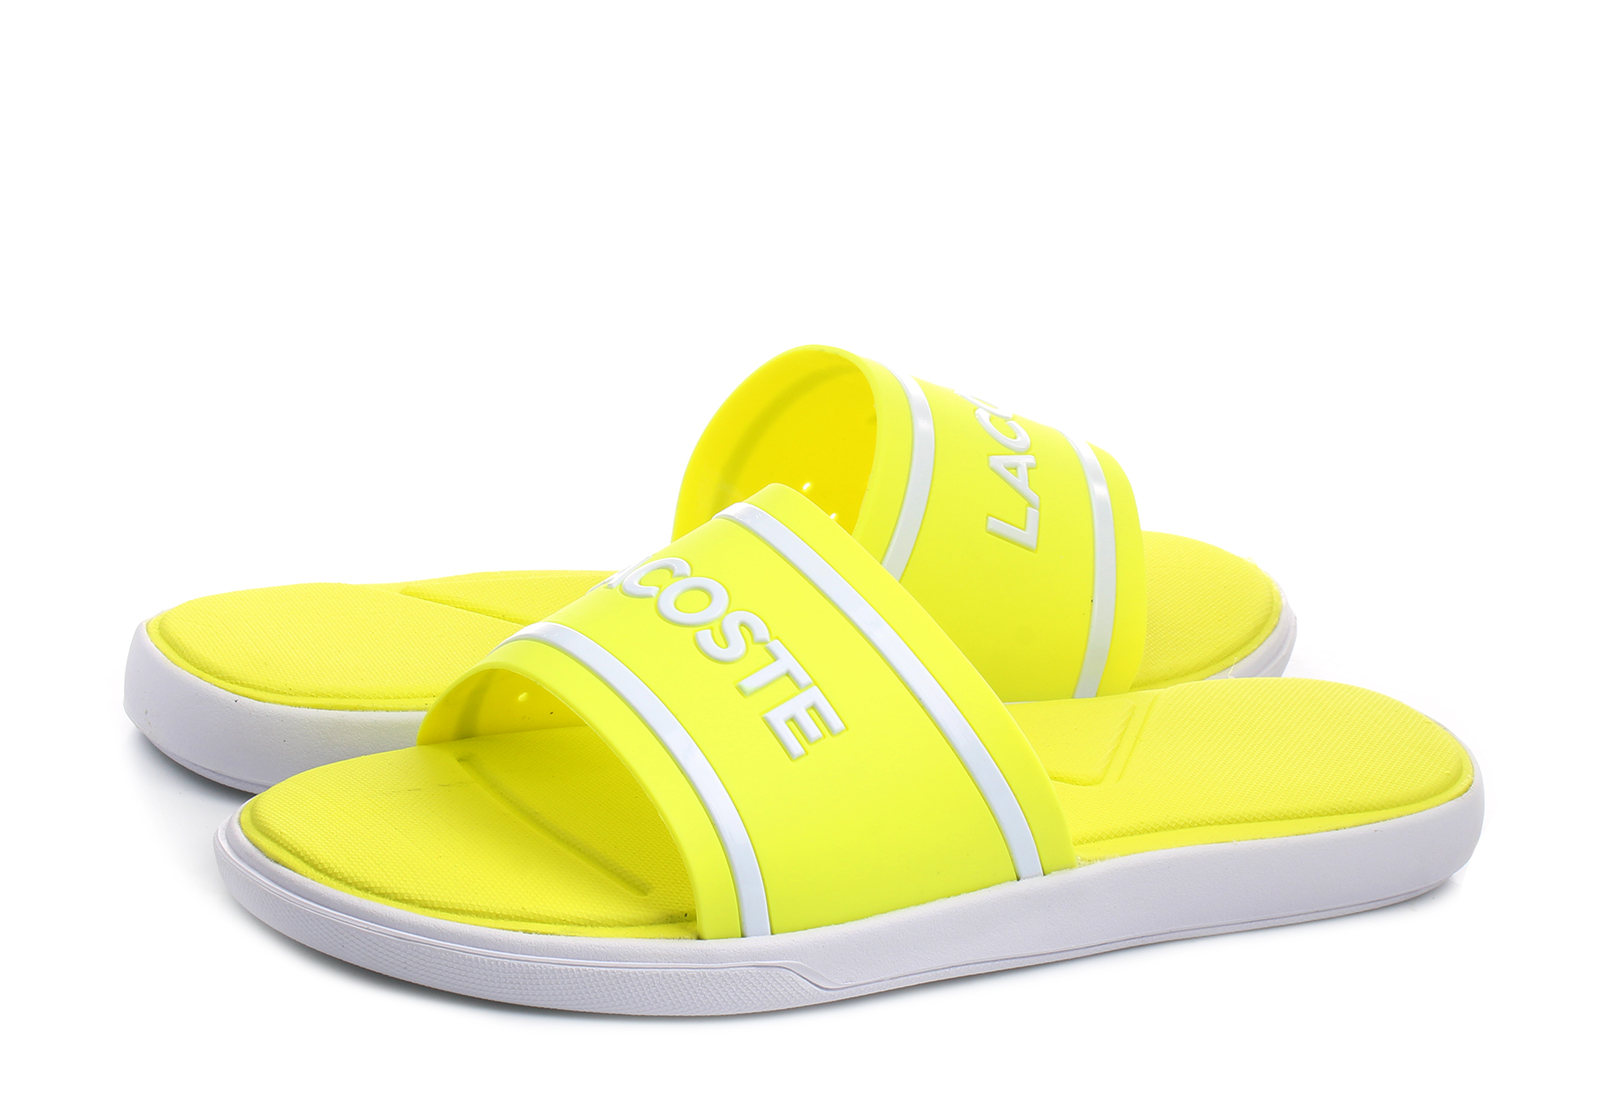 Lacoste Slippers - L.30 Slide - 181caw0021-fy9 - Online shop for ... f4a1be7c90